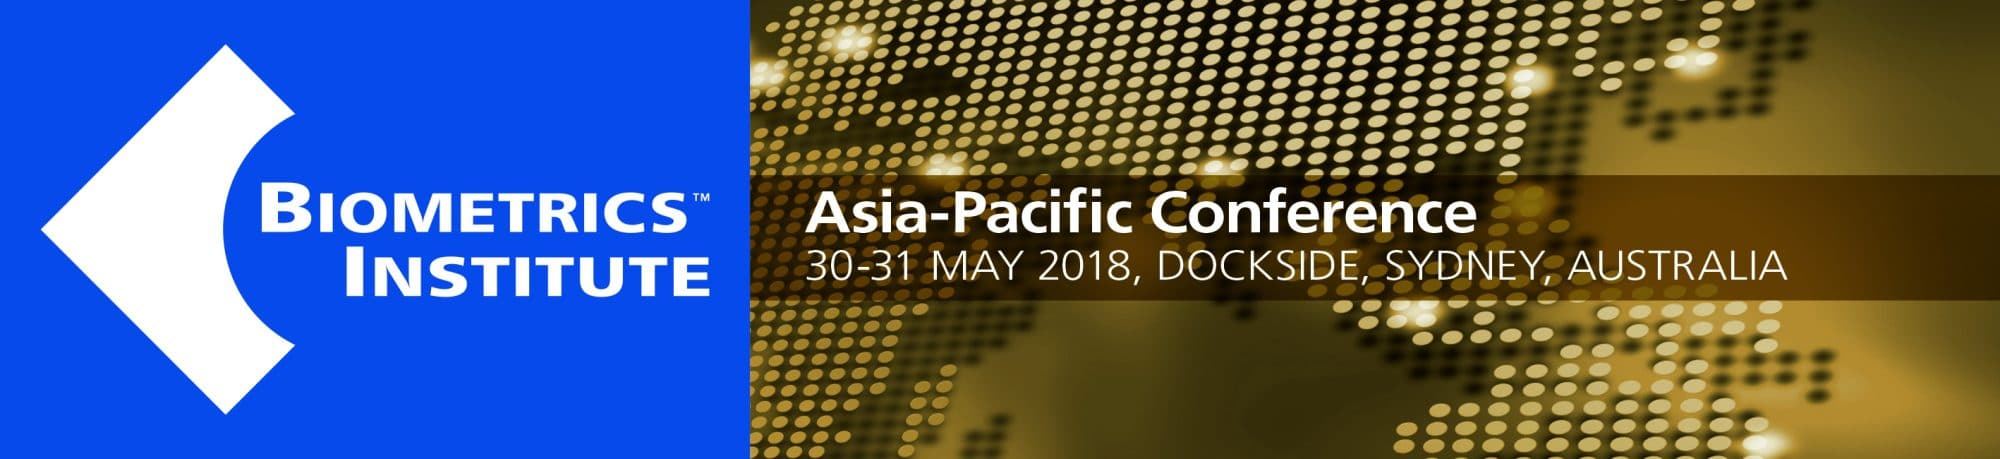 Biometrics-Institute-Asia-Pacific-Conference